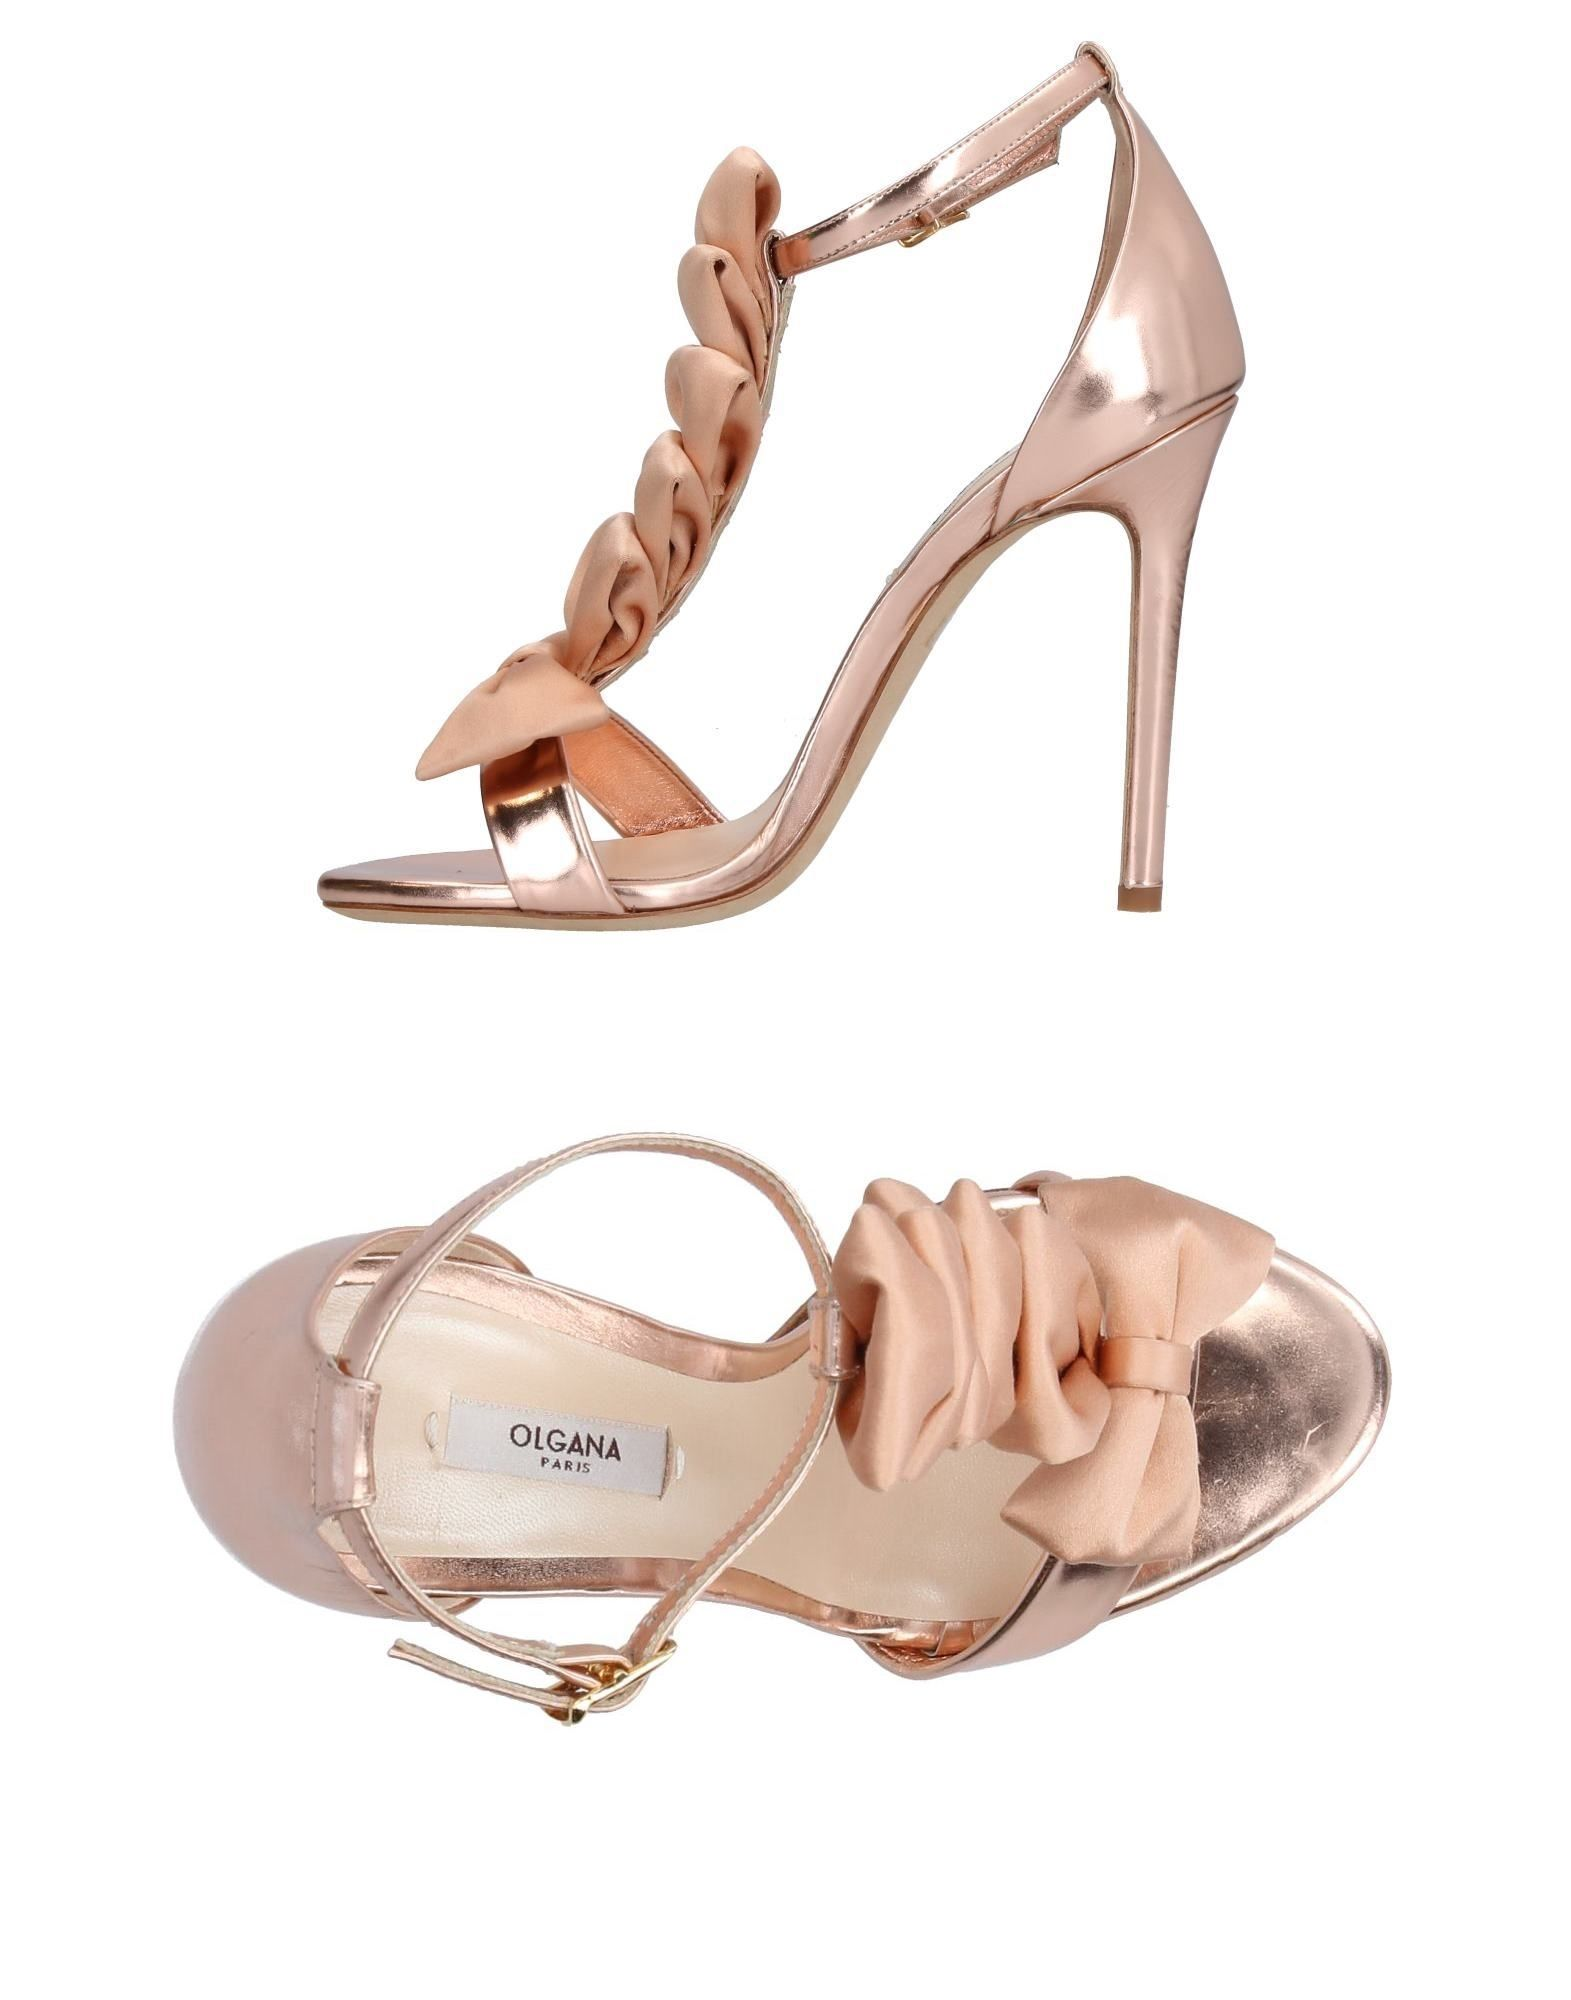 OLGANA PARIS Sandals in Copper